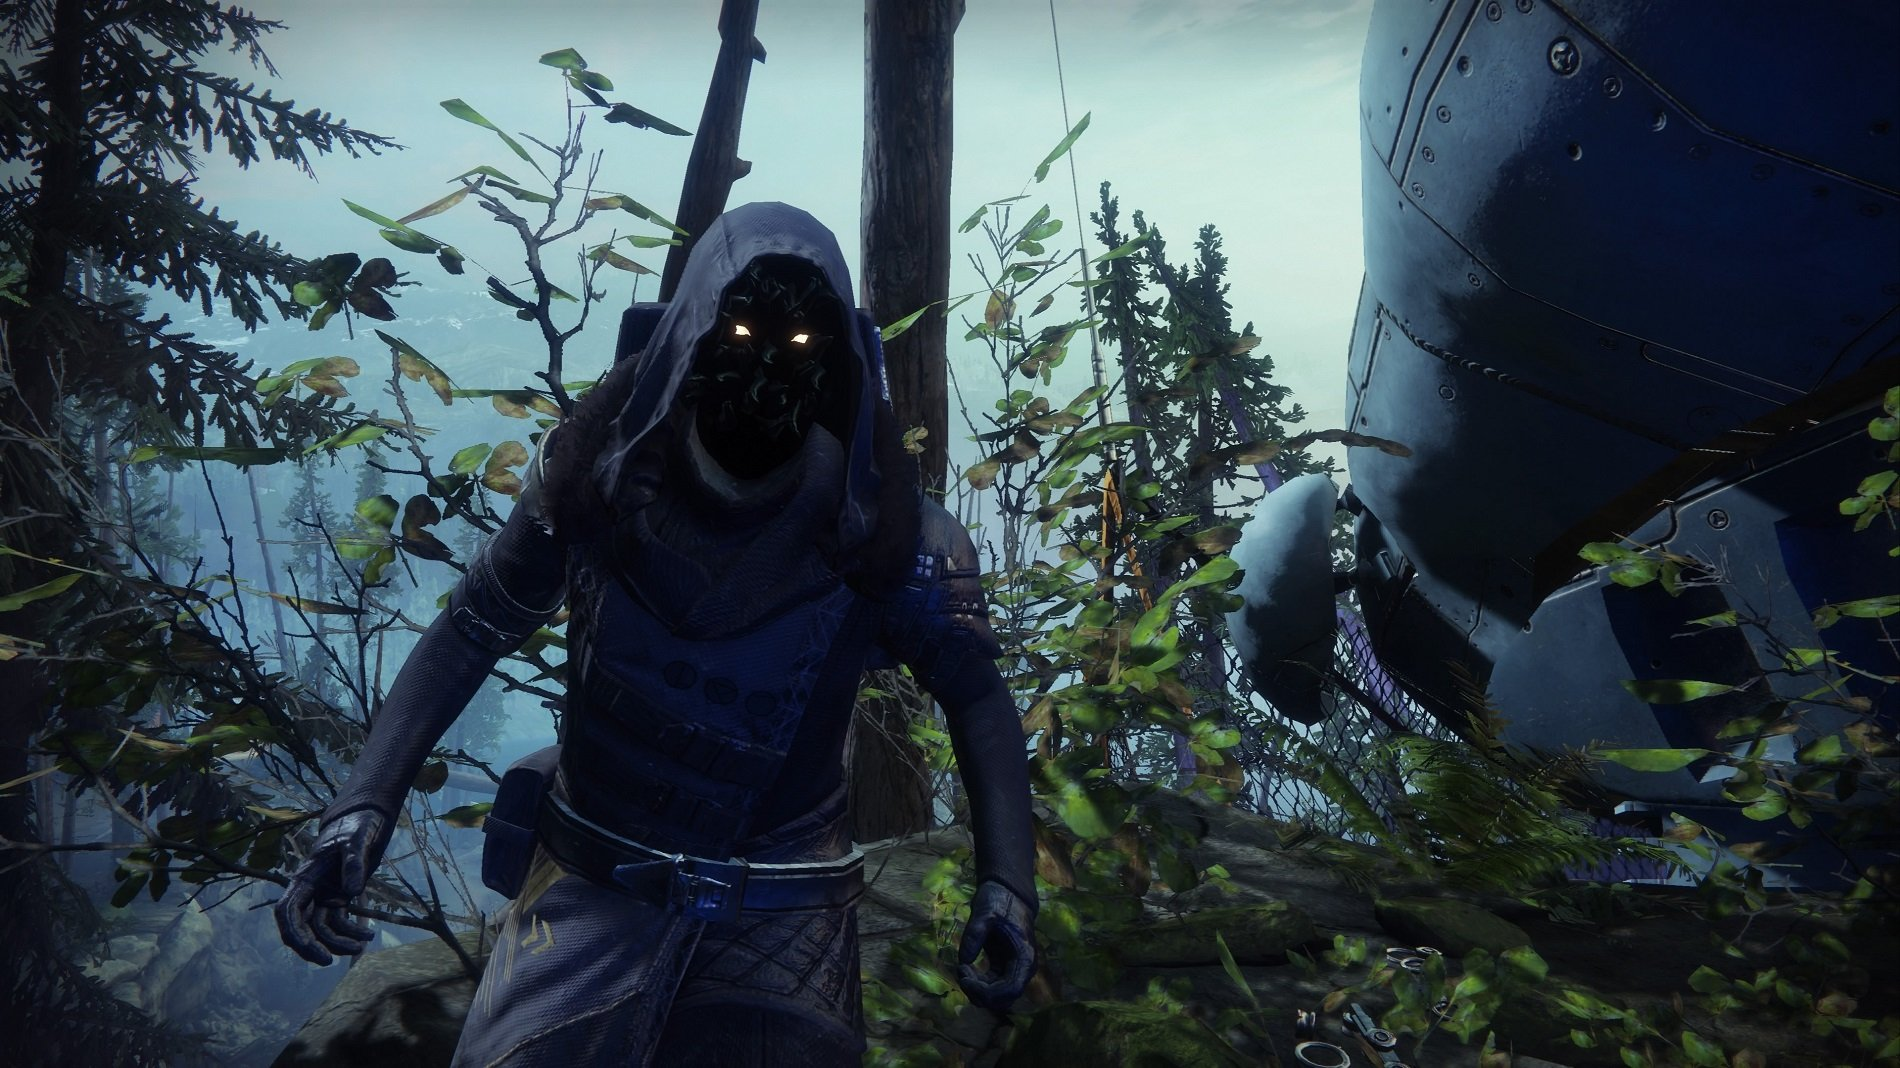 Where to find Xur in Destiny 2 - May 15, 2020